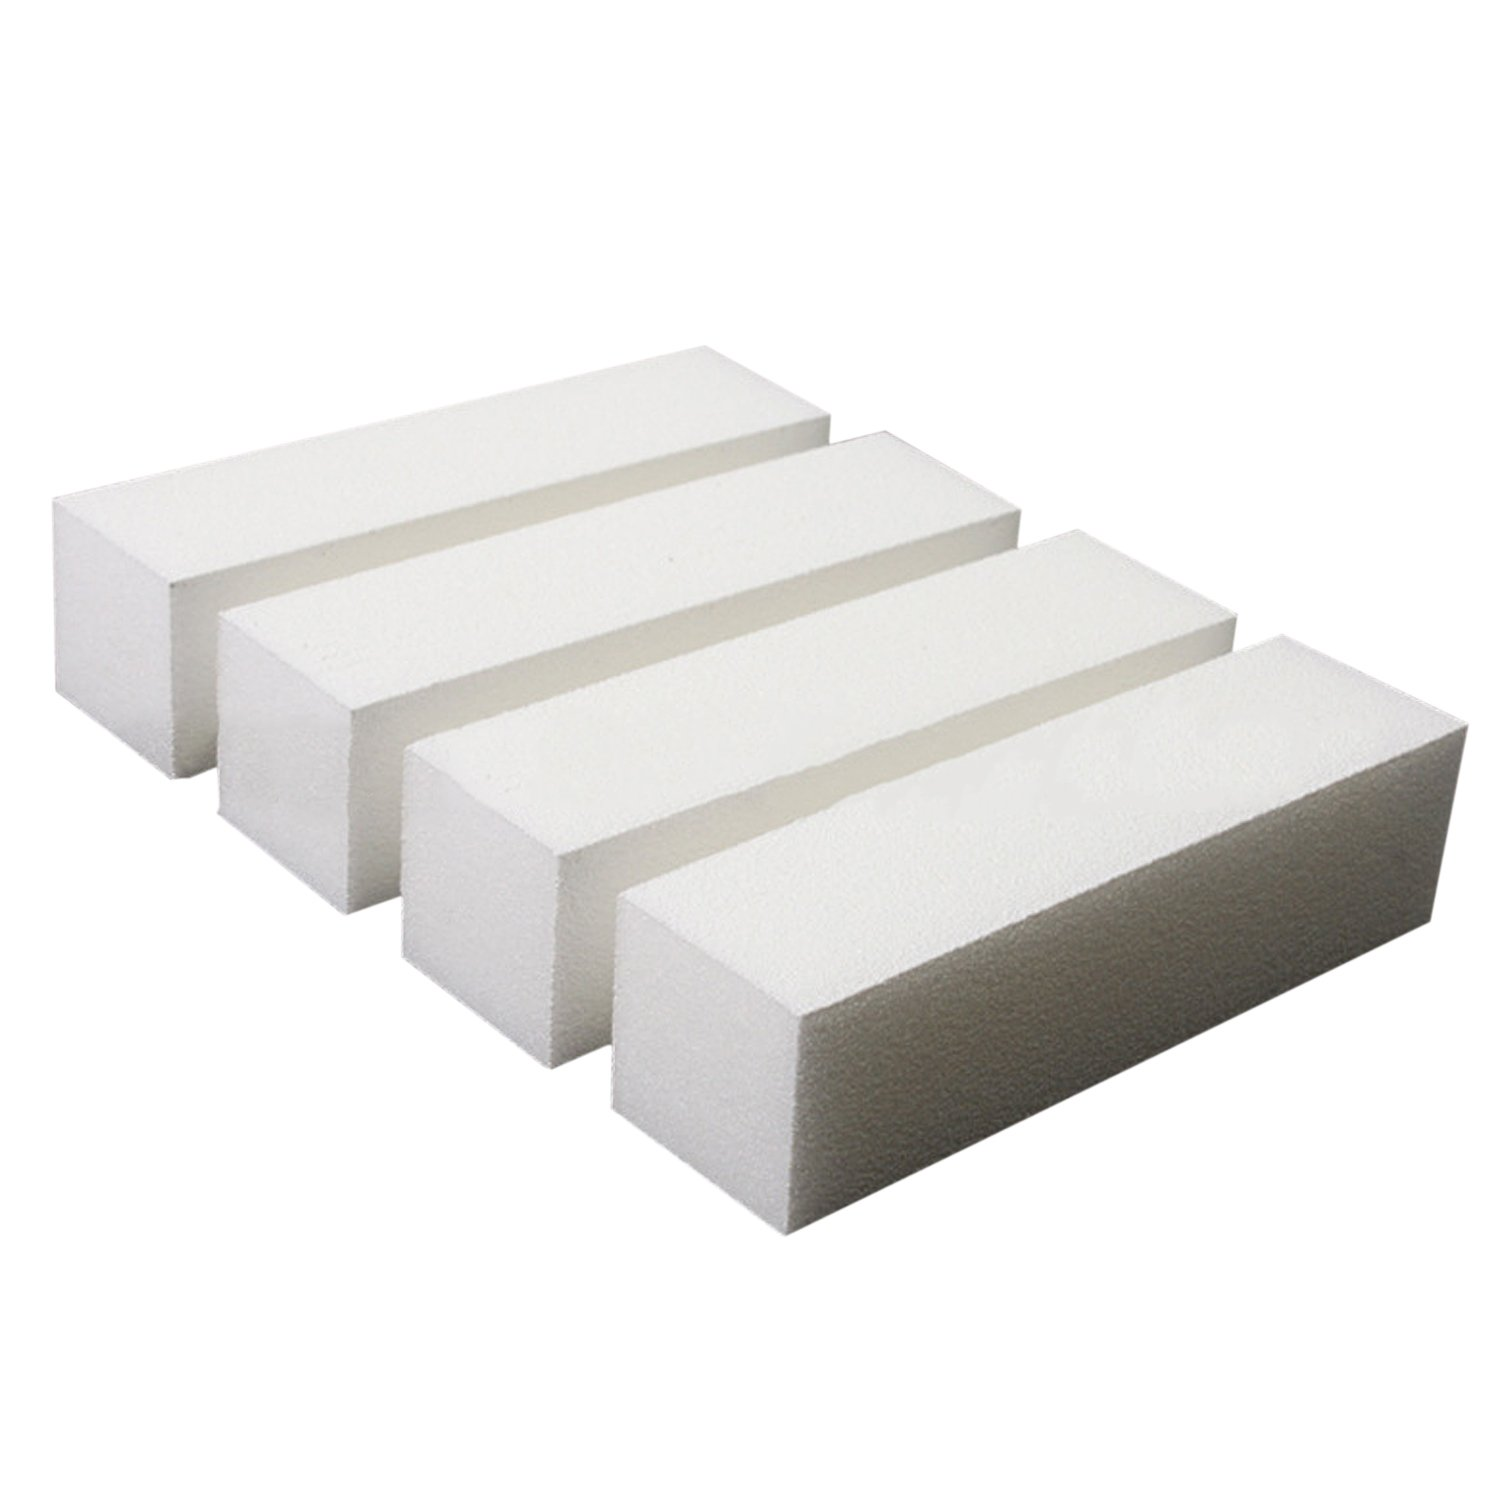 10pcs Nail Art Care Buffer Buffing Sanding Block Files Grit Acrylic Tool White Elisona